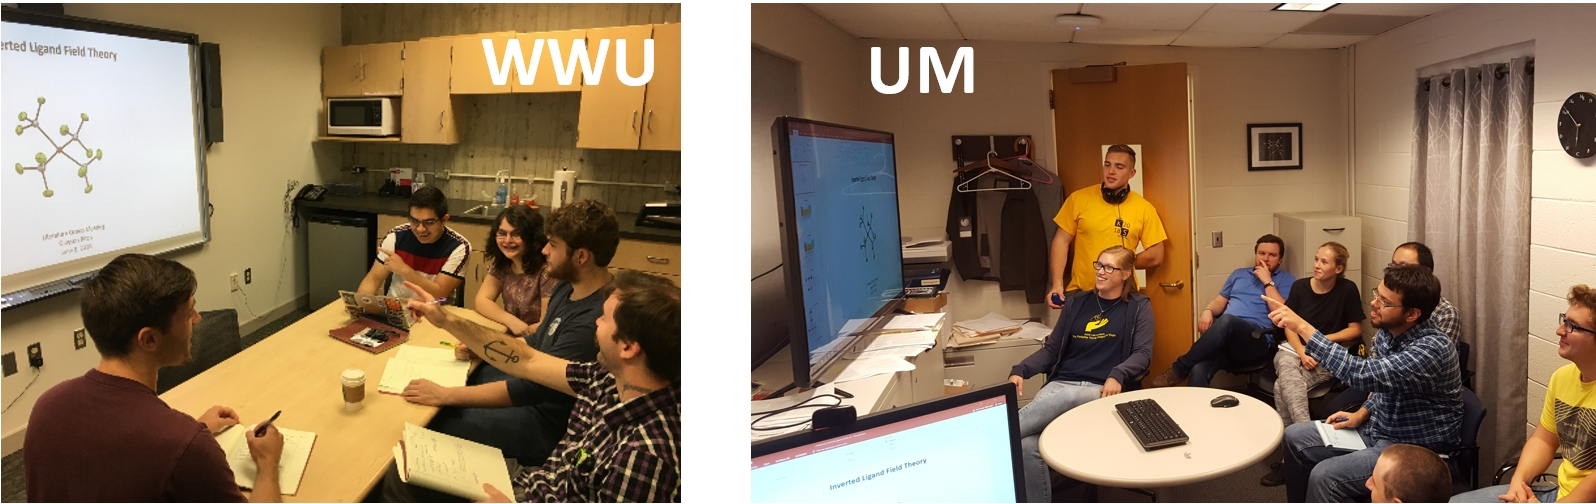 "left: Students surround a table, focused on a projection of molecules. The picture is labeled ""WWU"" right: students look at a screen. The photo is labeled ""UM"""